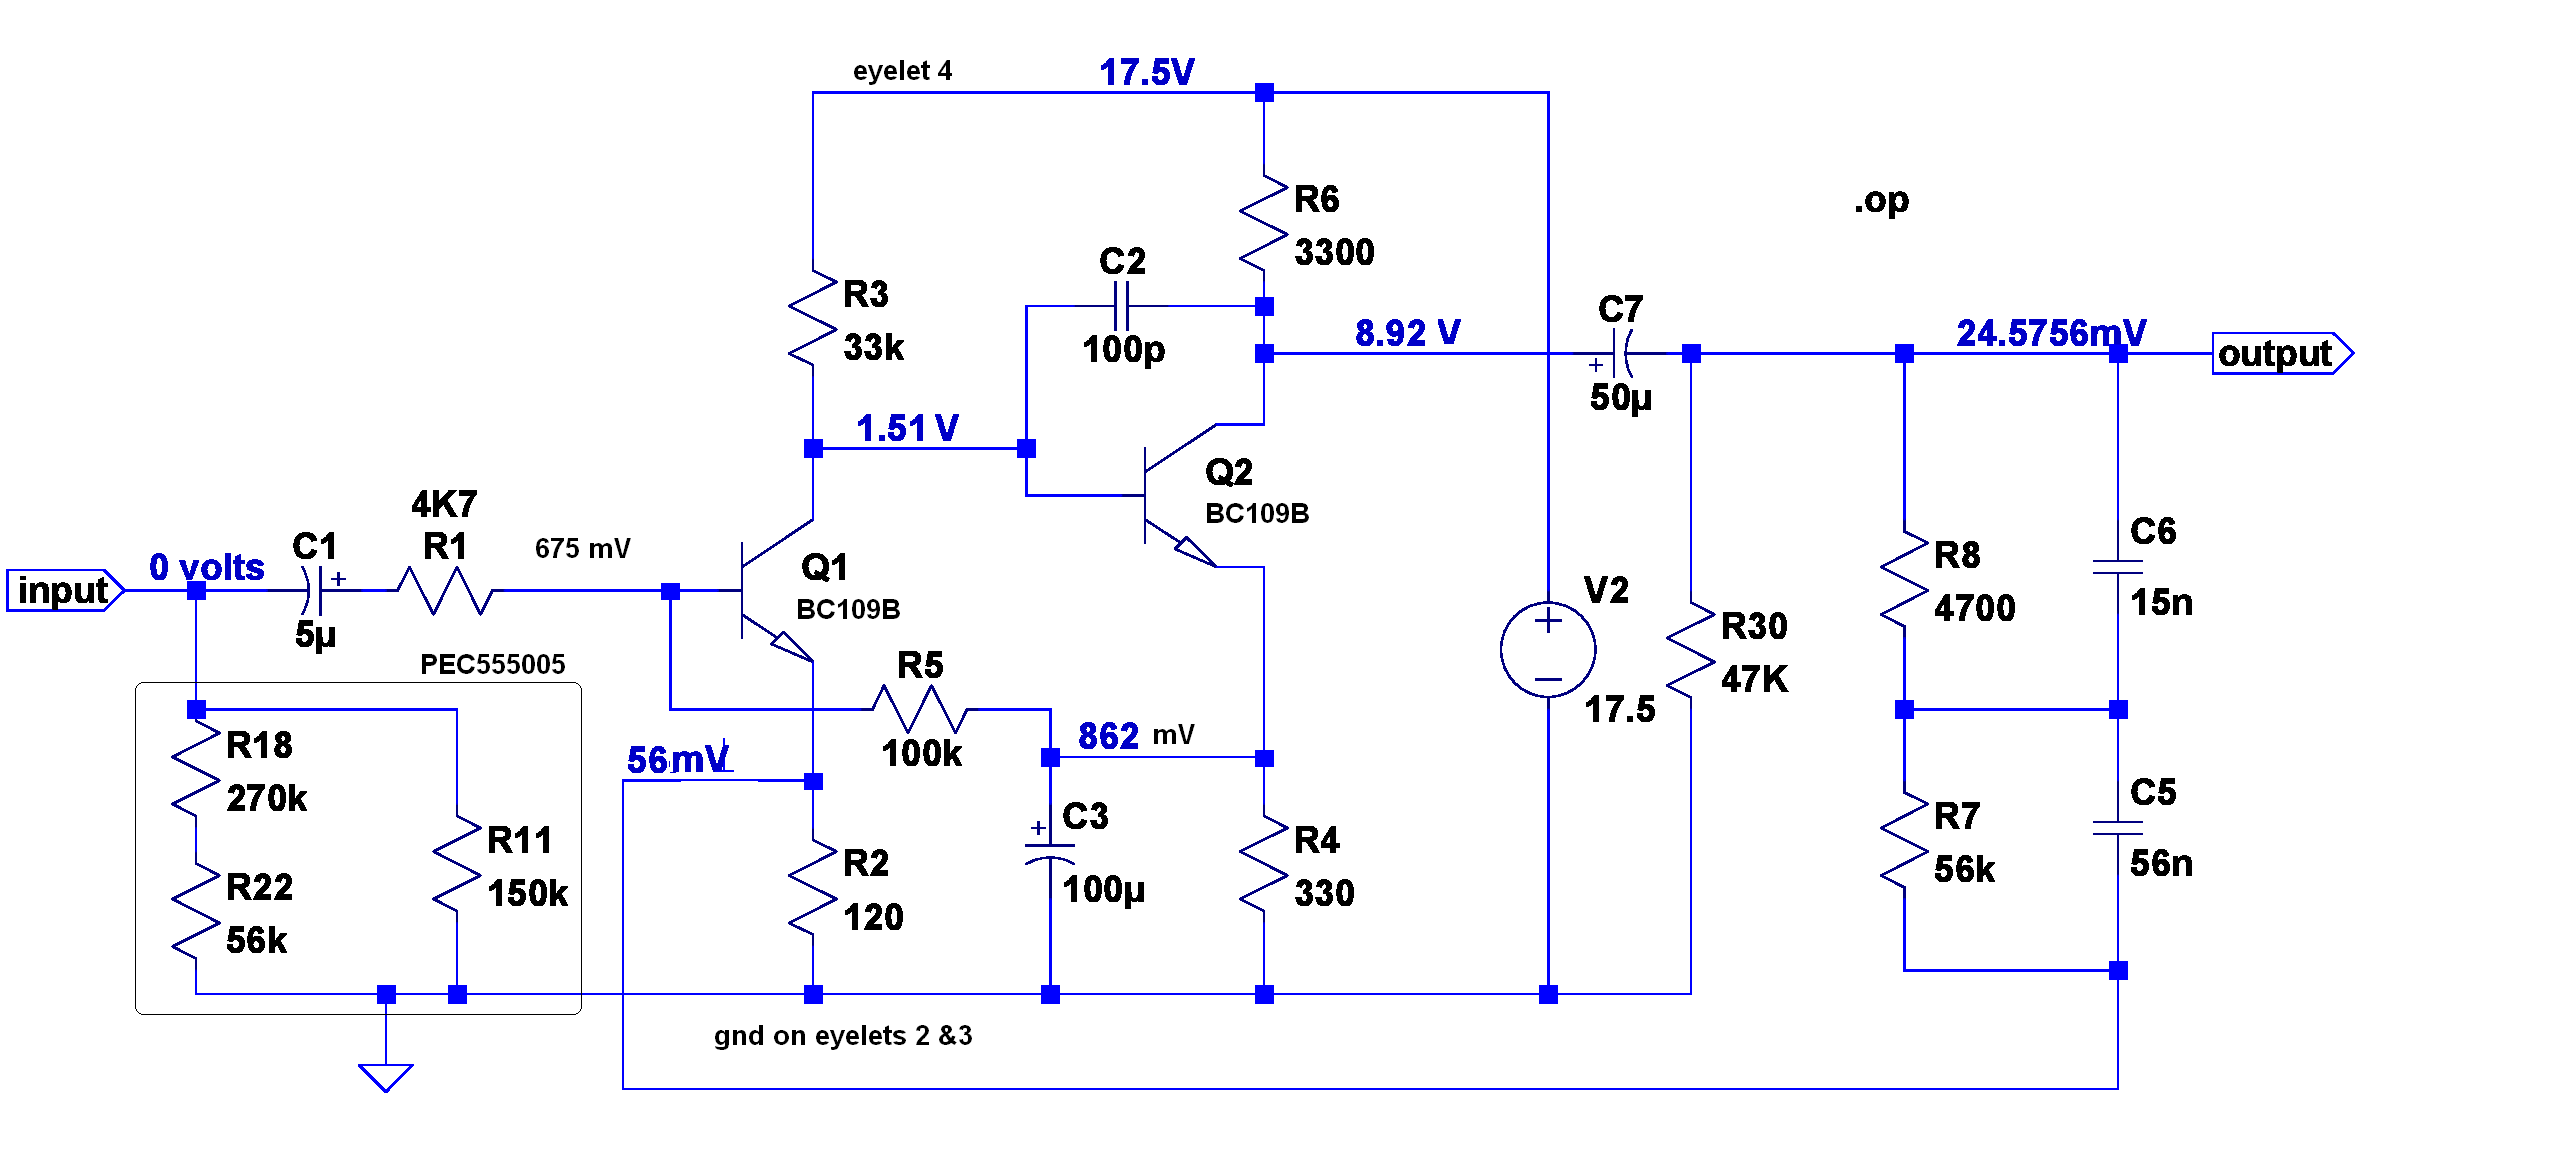 phono preamp schematic with DC bias voltages annotated